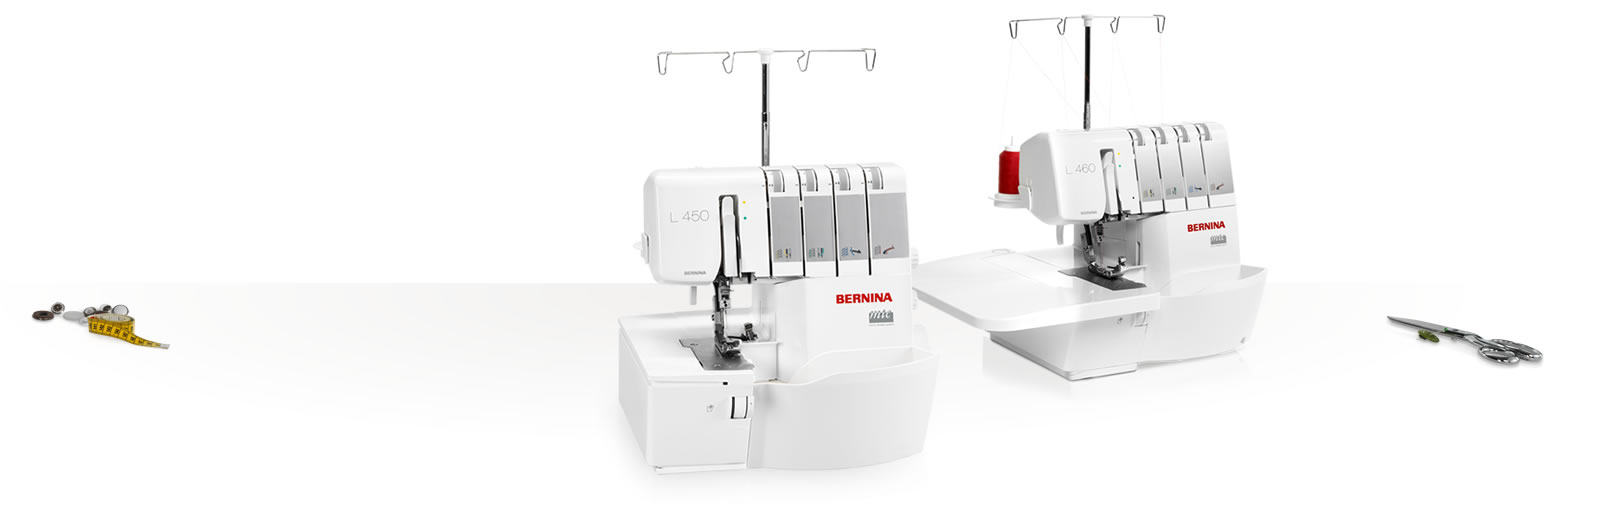 Picture: Serger/Overlocker